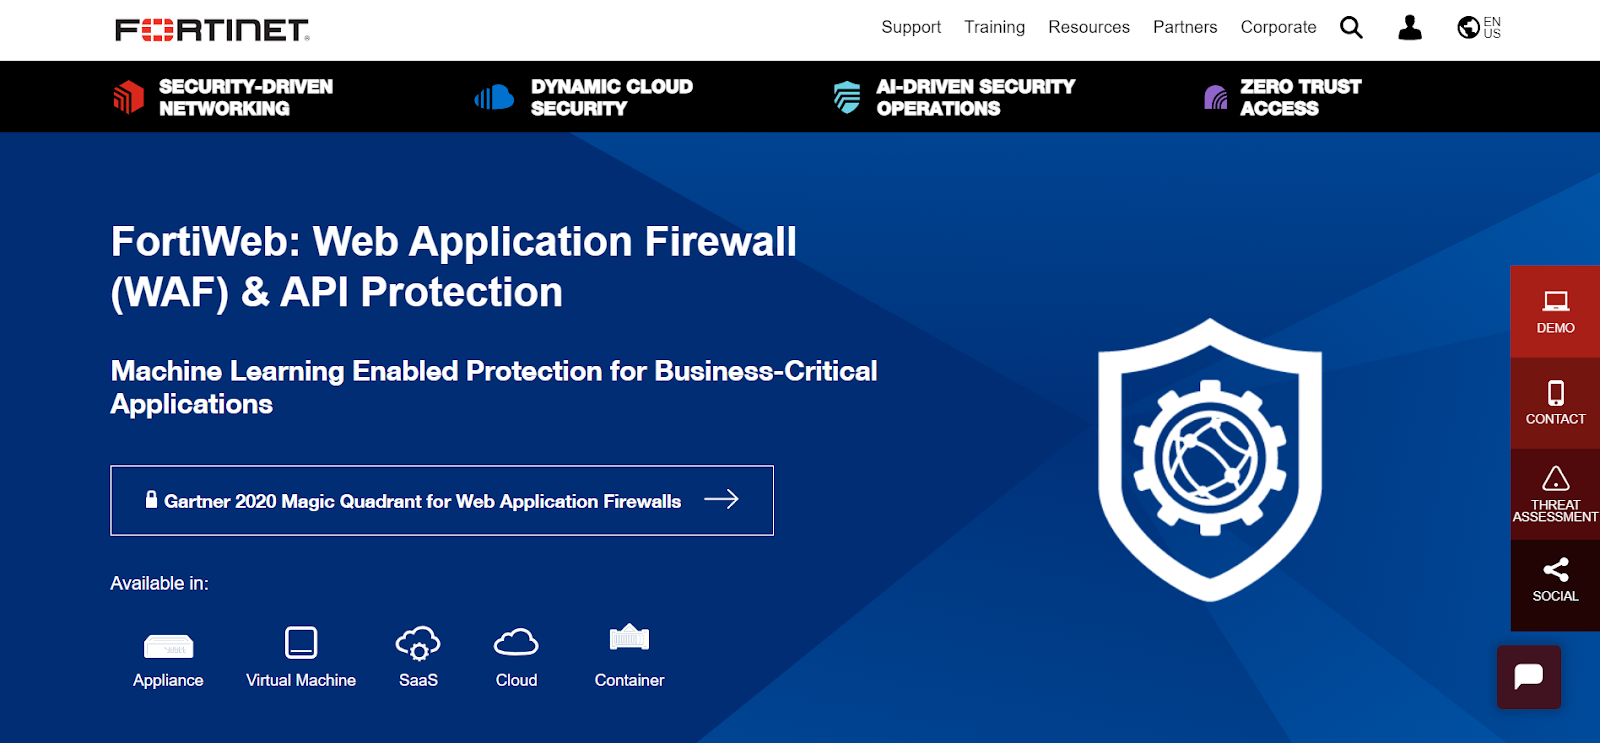 Fortinet Fortiweb is a Web Application Firewall Application